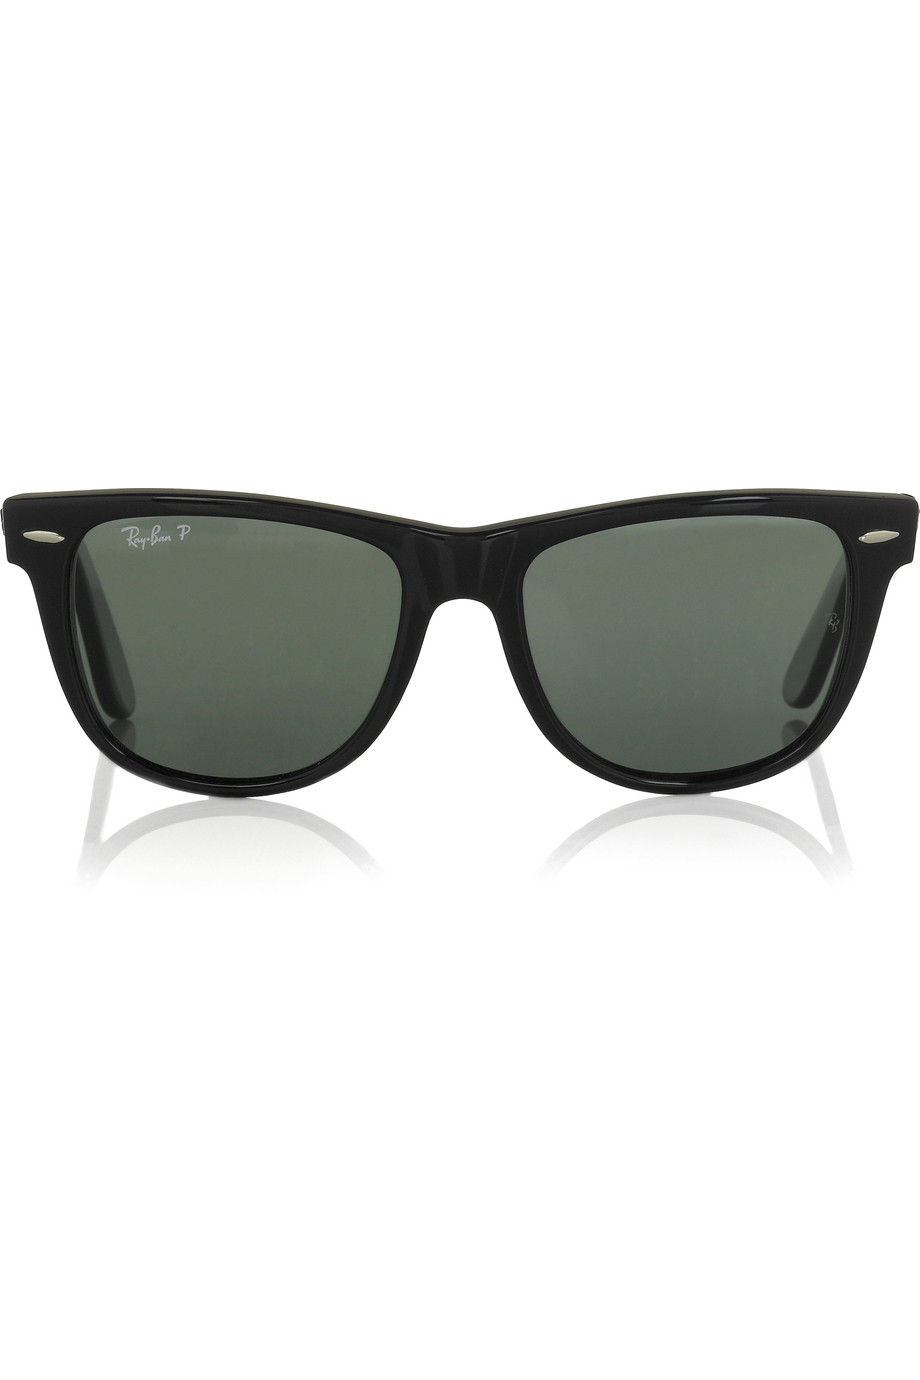 Ray-ban Large Wayfarer Acetate Sunglasses in Black Lyst